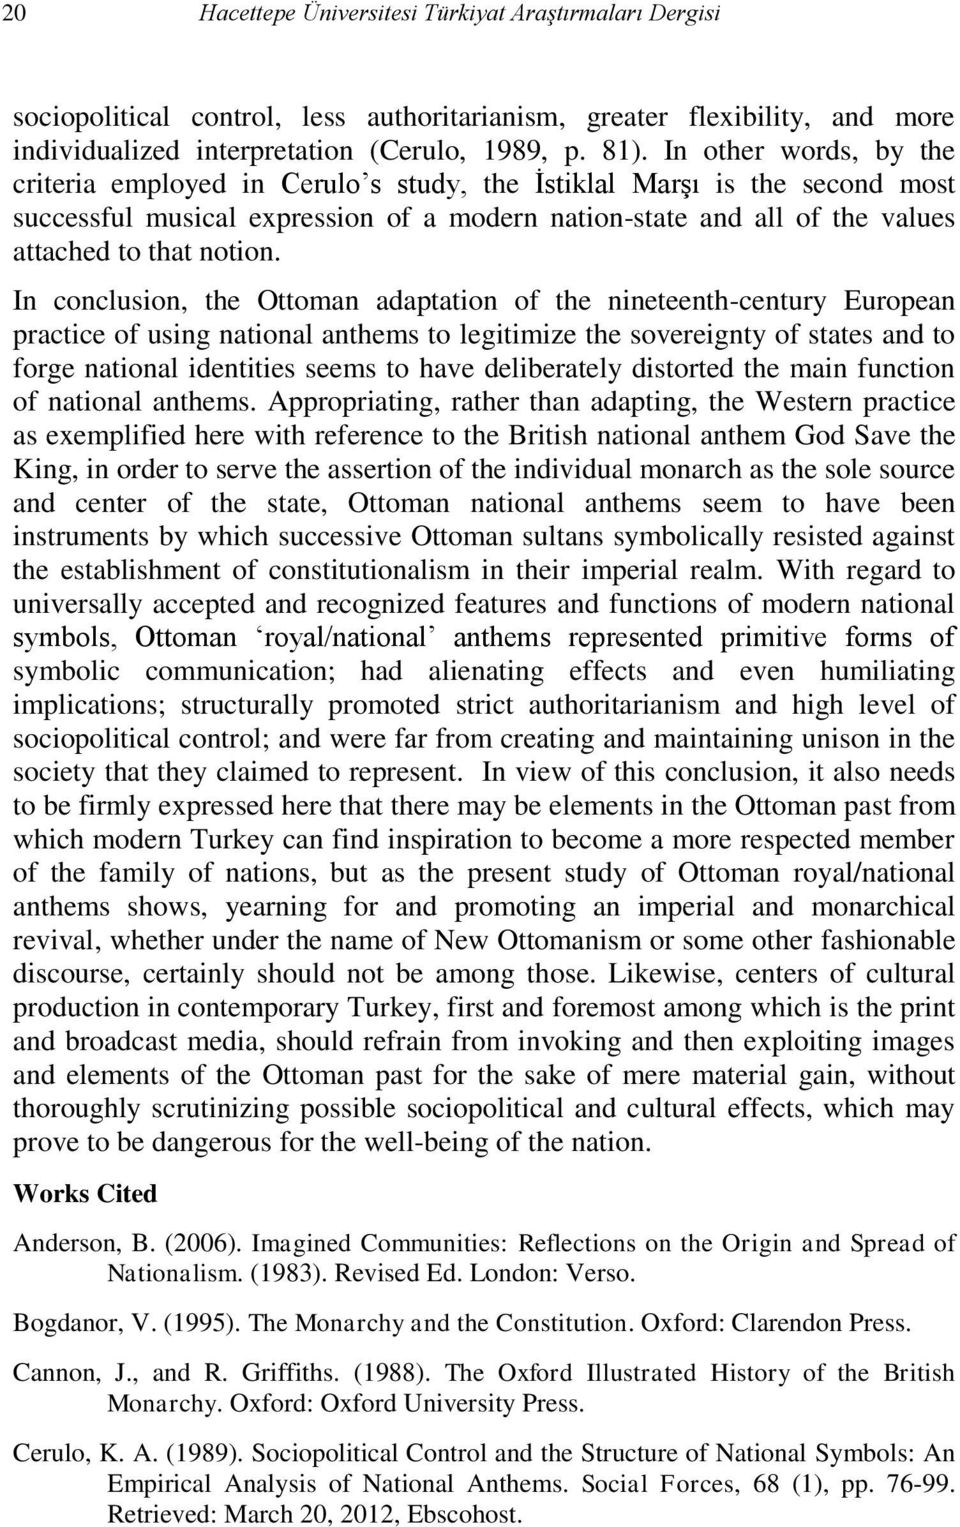 In conclusion, the Ottoman adaptation of the nineteenth-century European practice of using national anthems to legitimize the sovereignty of states and to forge national identities seems to have